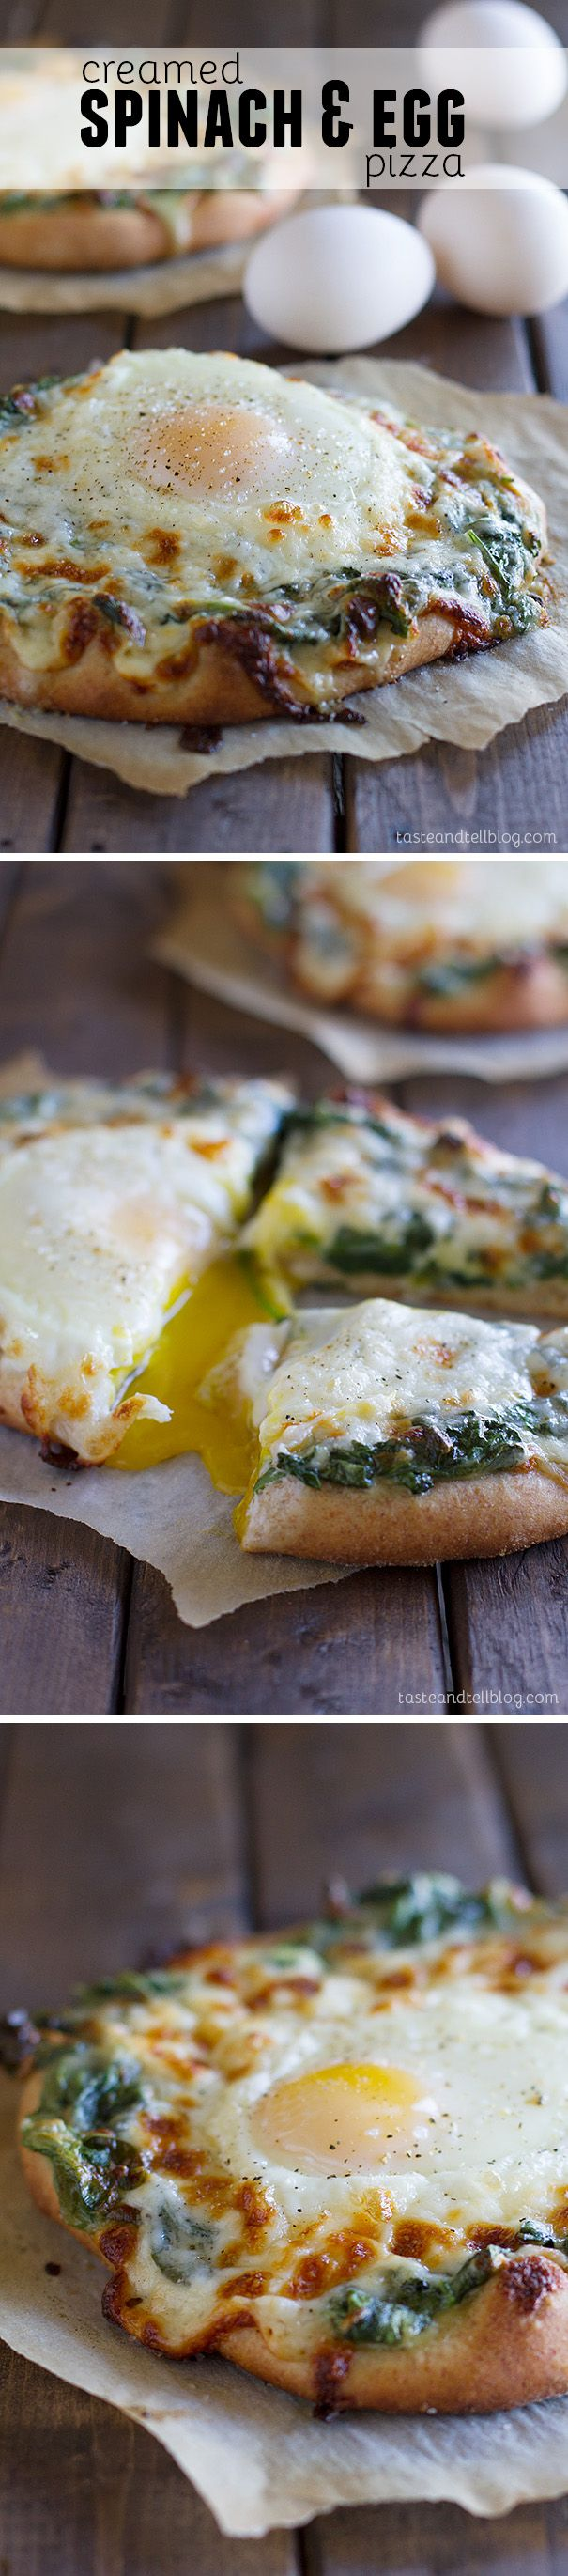 Creamed Spinach and Egg Pizza - Breakfast meets dinner in this pizza that is topped with creamed spinach and a perfectly cooked baked egg.